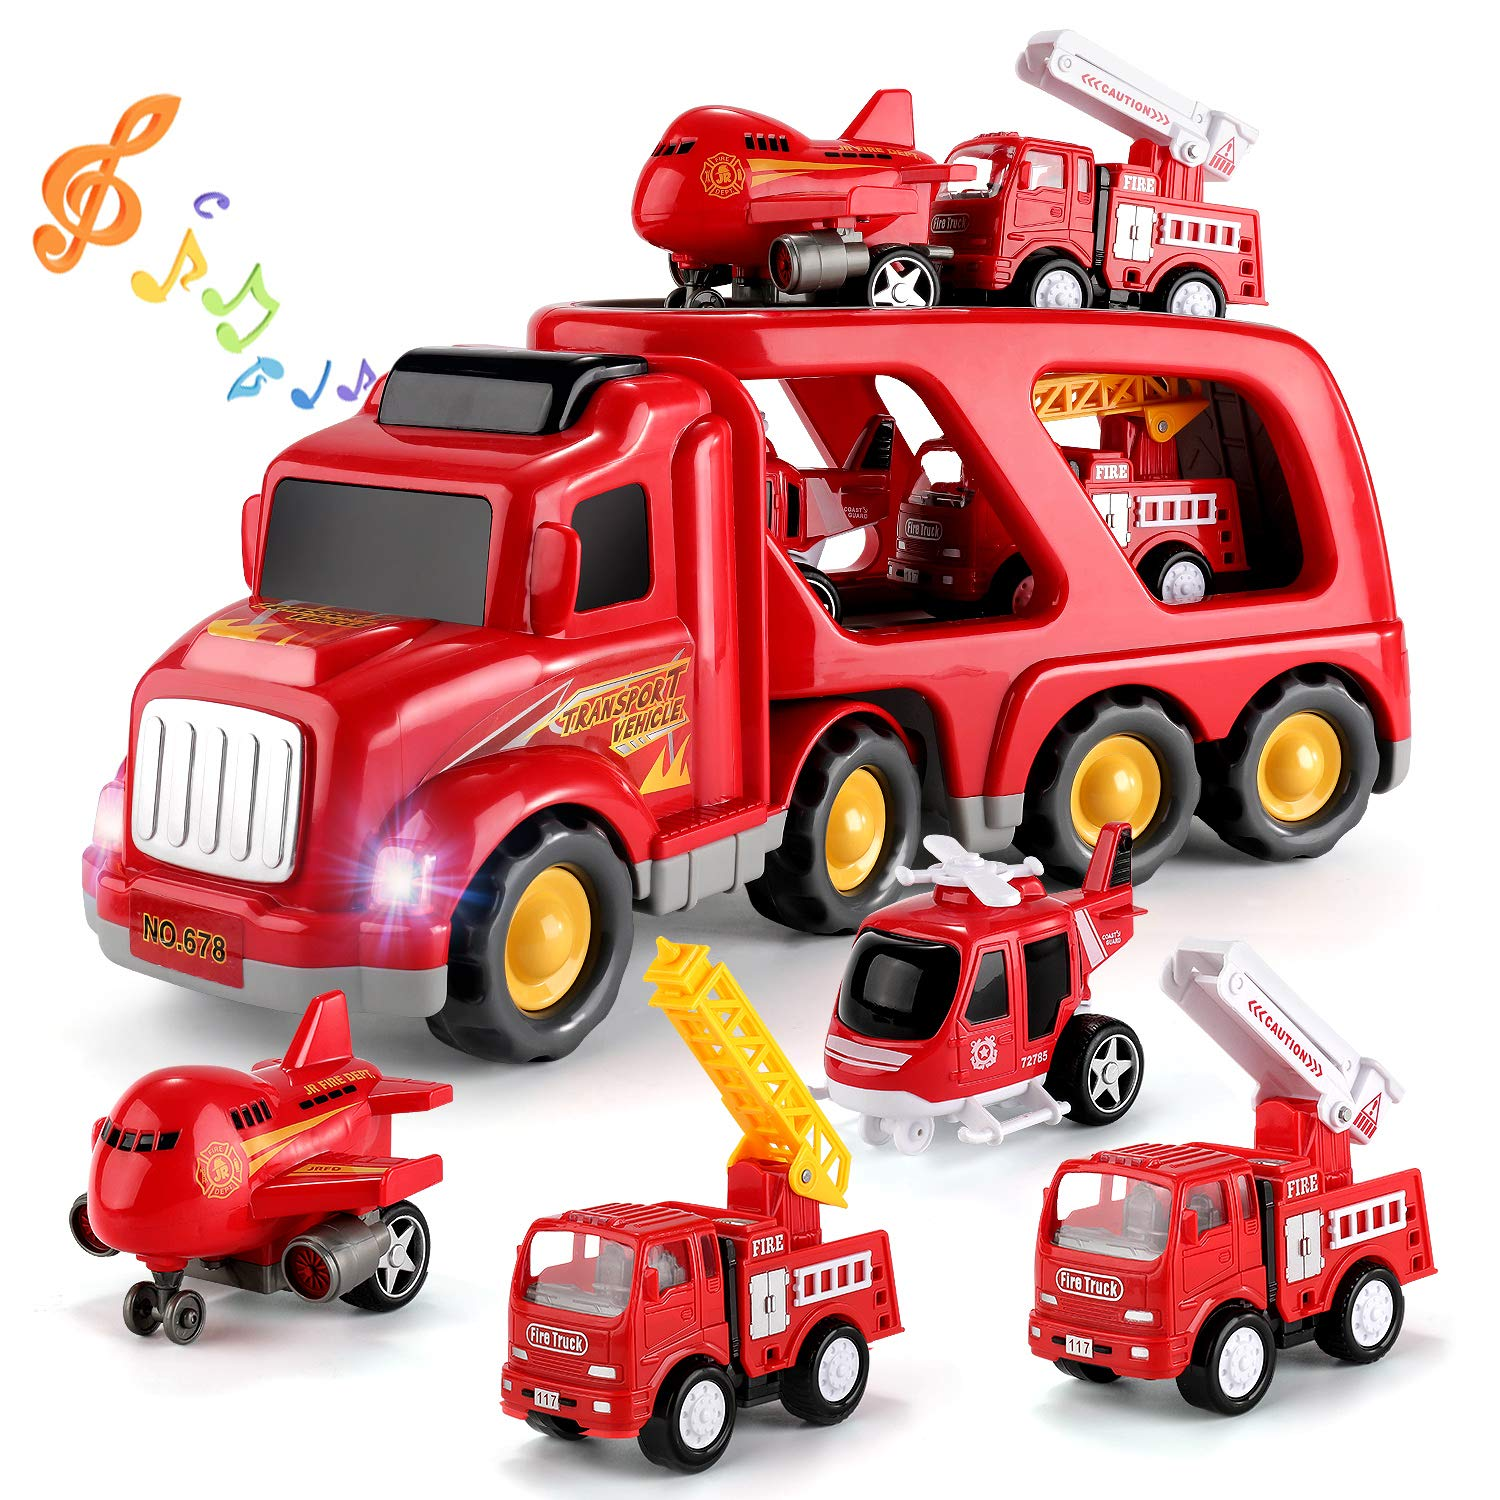 TEMI Fire Truck Engine Vehicle Toy Set, 5-in-1 Friction Power Carrier Truck, Push and Go Play Vehicles Toys w/ Extendable Emergency Fire Lifting Truck/Ladder Truck/Helicopter/Plane